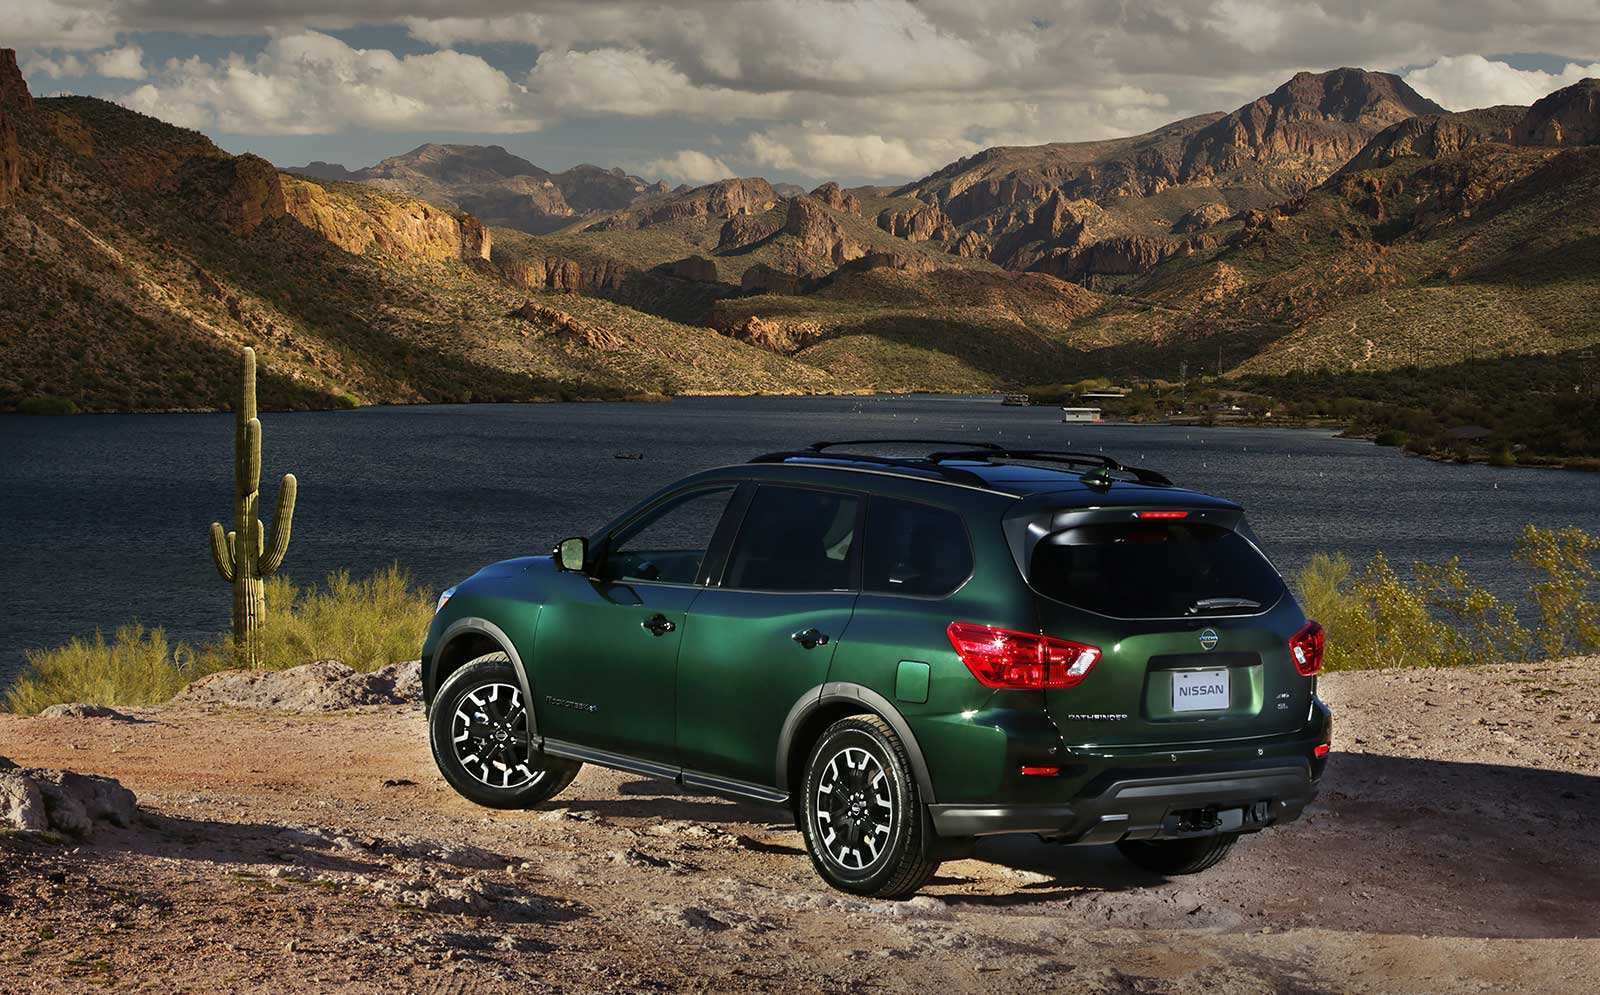 55 A 2020 Nissan Pathfinder Review And Release Date